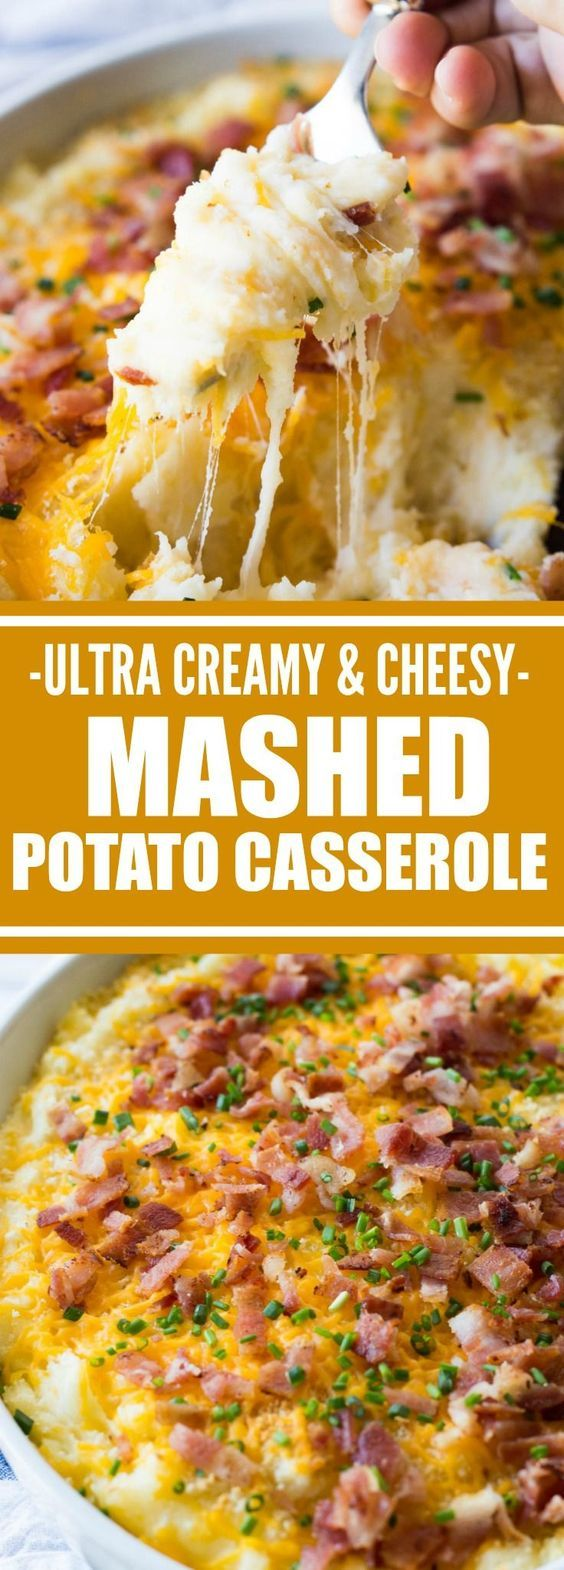 Mashed Potato Casserole. The creamiest, cheesiest mashed potatoes EVER! This easy to make side dish is loaded up with extra melty cheese, crispy bacon, and chives. The best part? Make it ahead of time and then just pop it in the oven to heat.